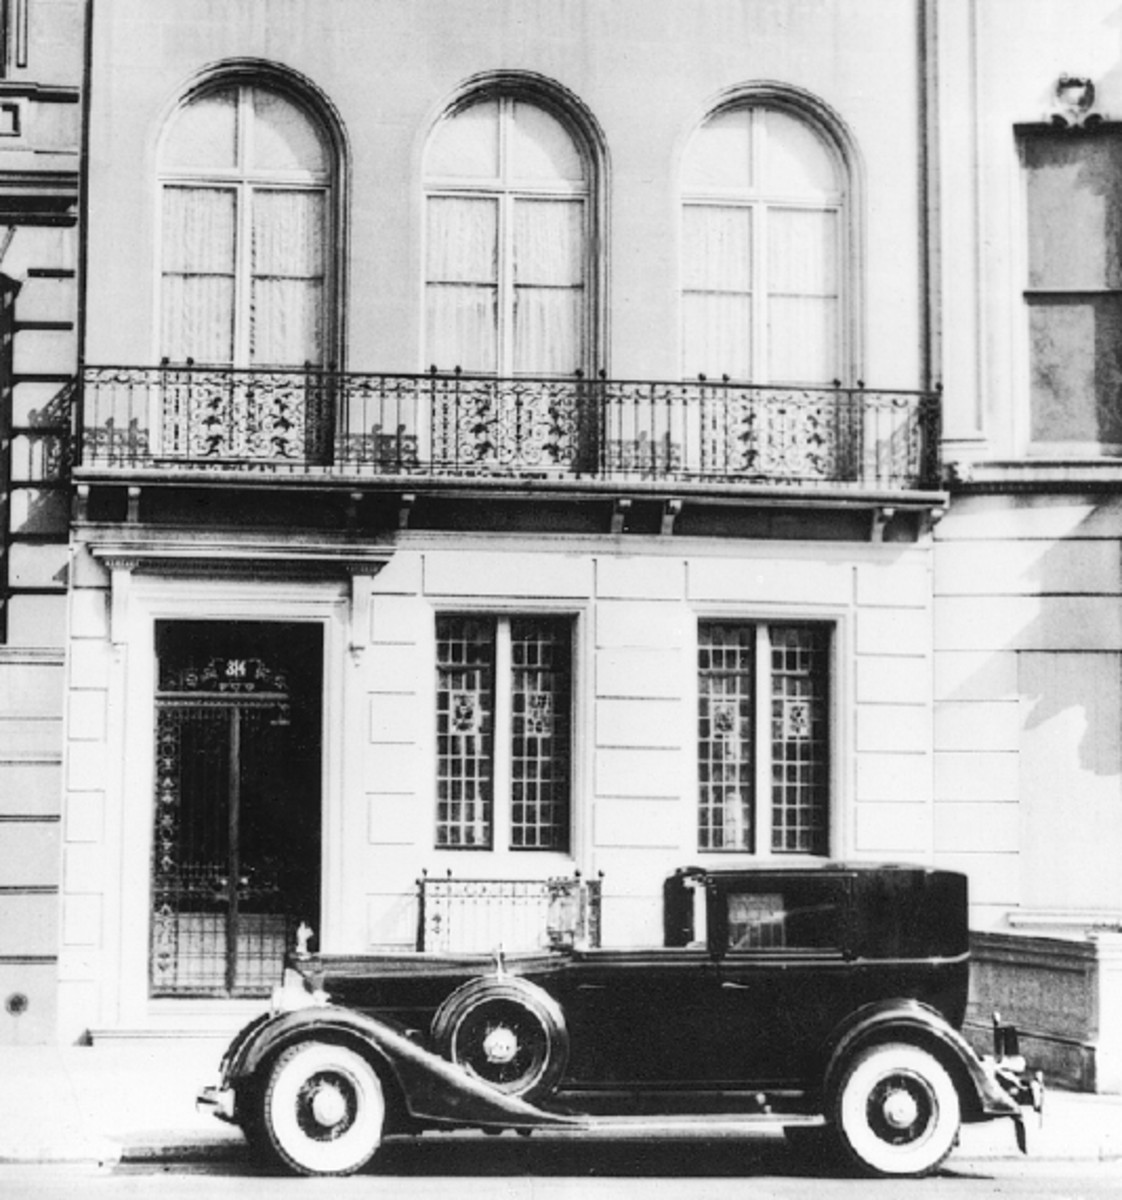 1934 Packard believed to be sporting Rollston town car coachwork. The car is pictured on New York City's Fifth Avenue in 1937.